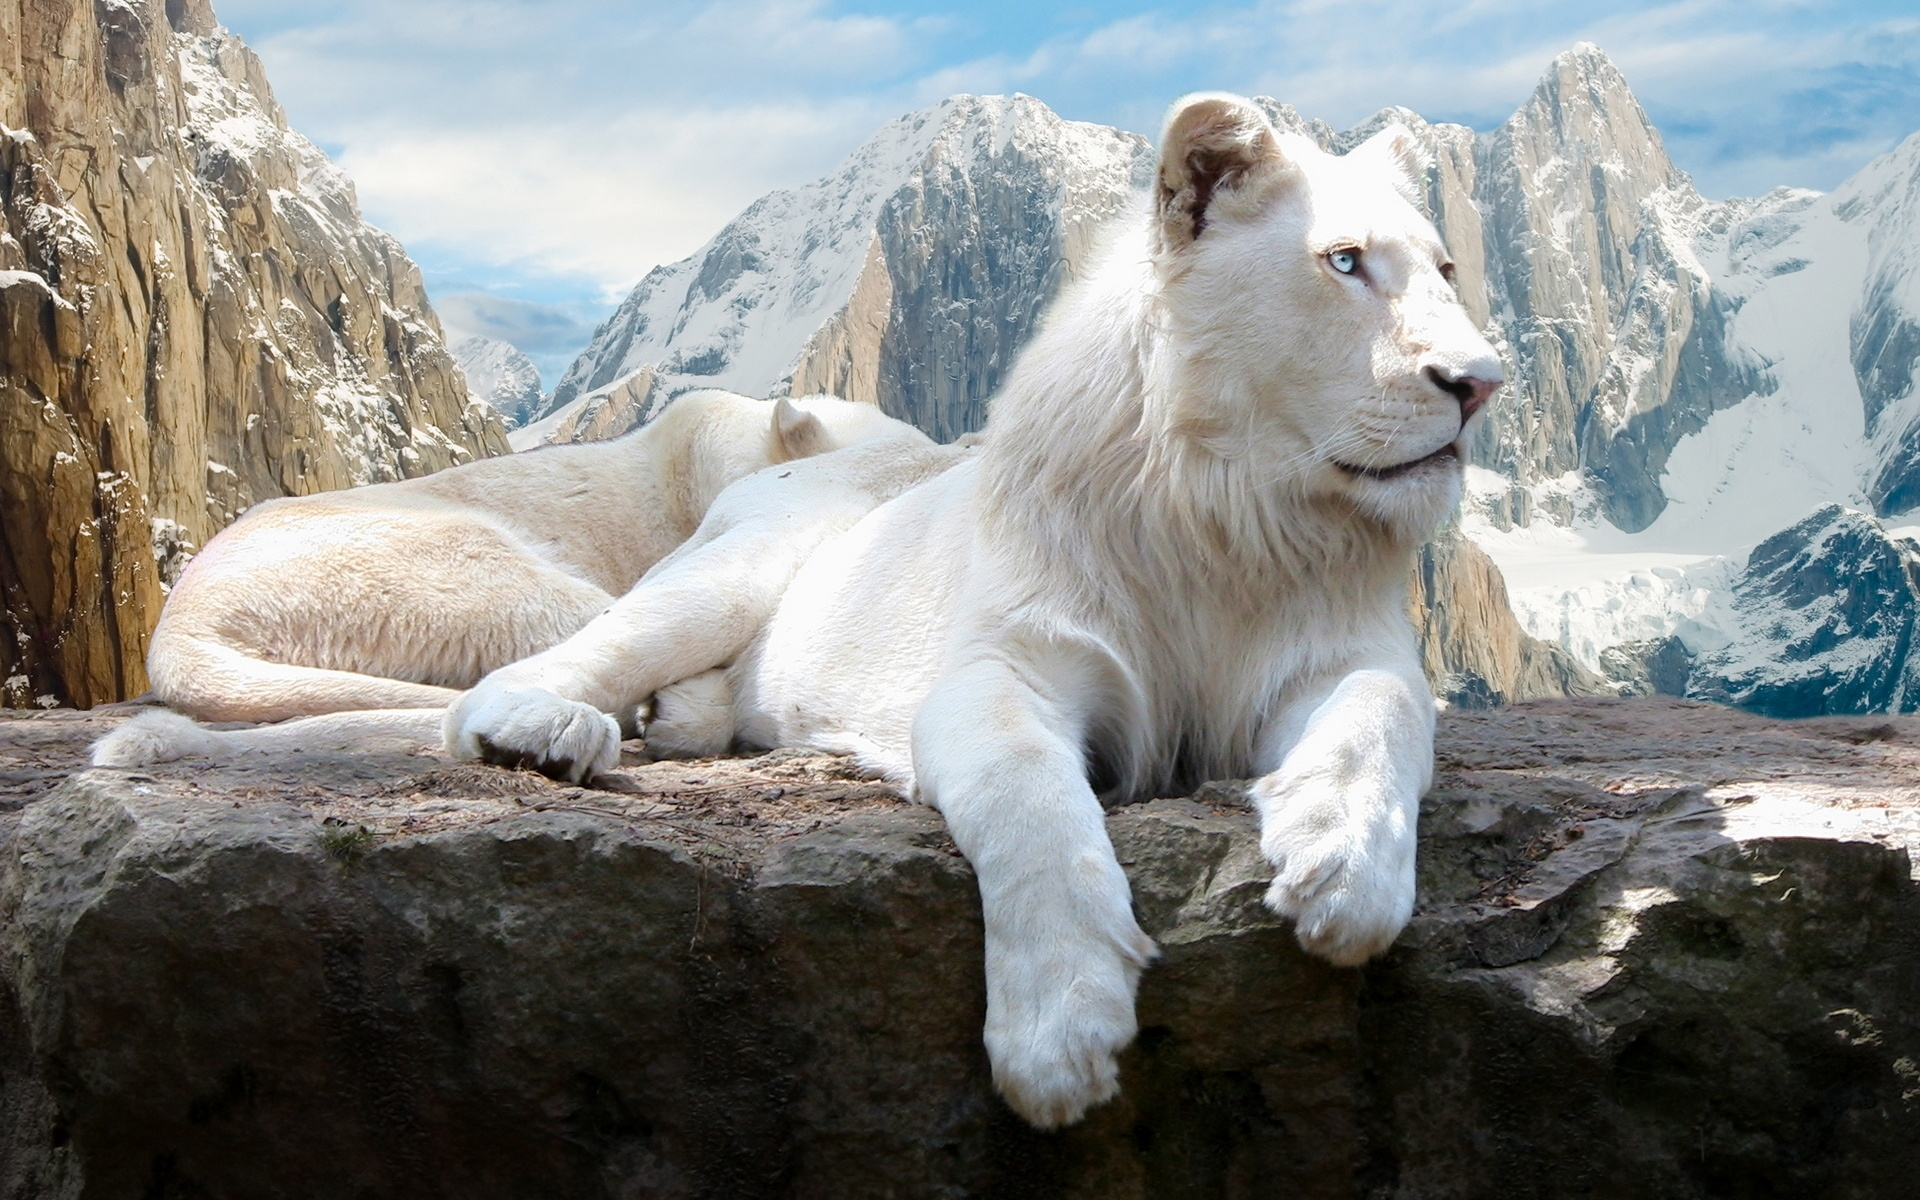 43860 download wallpaper Lions, Animals screensavers and pictures for free